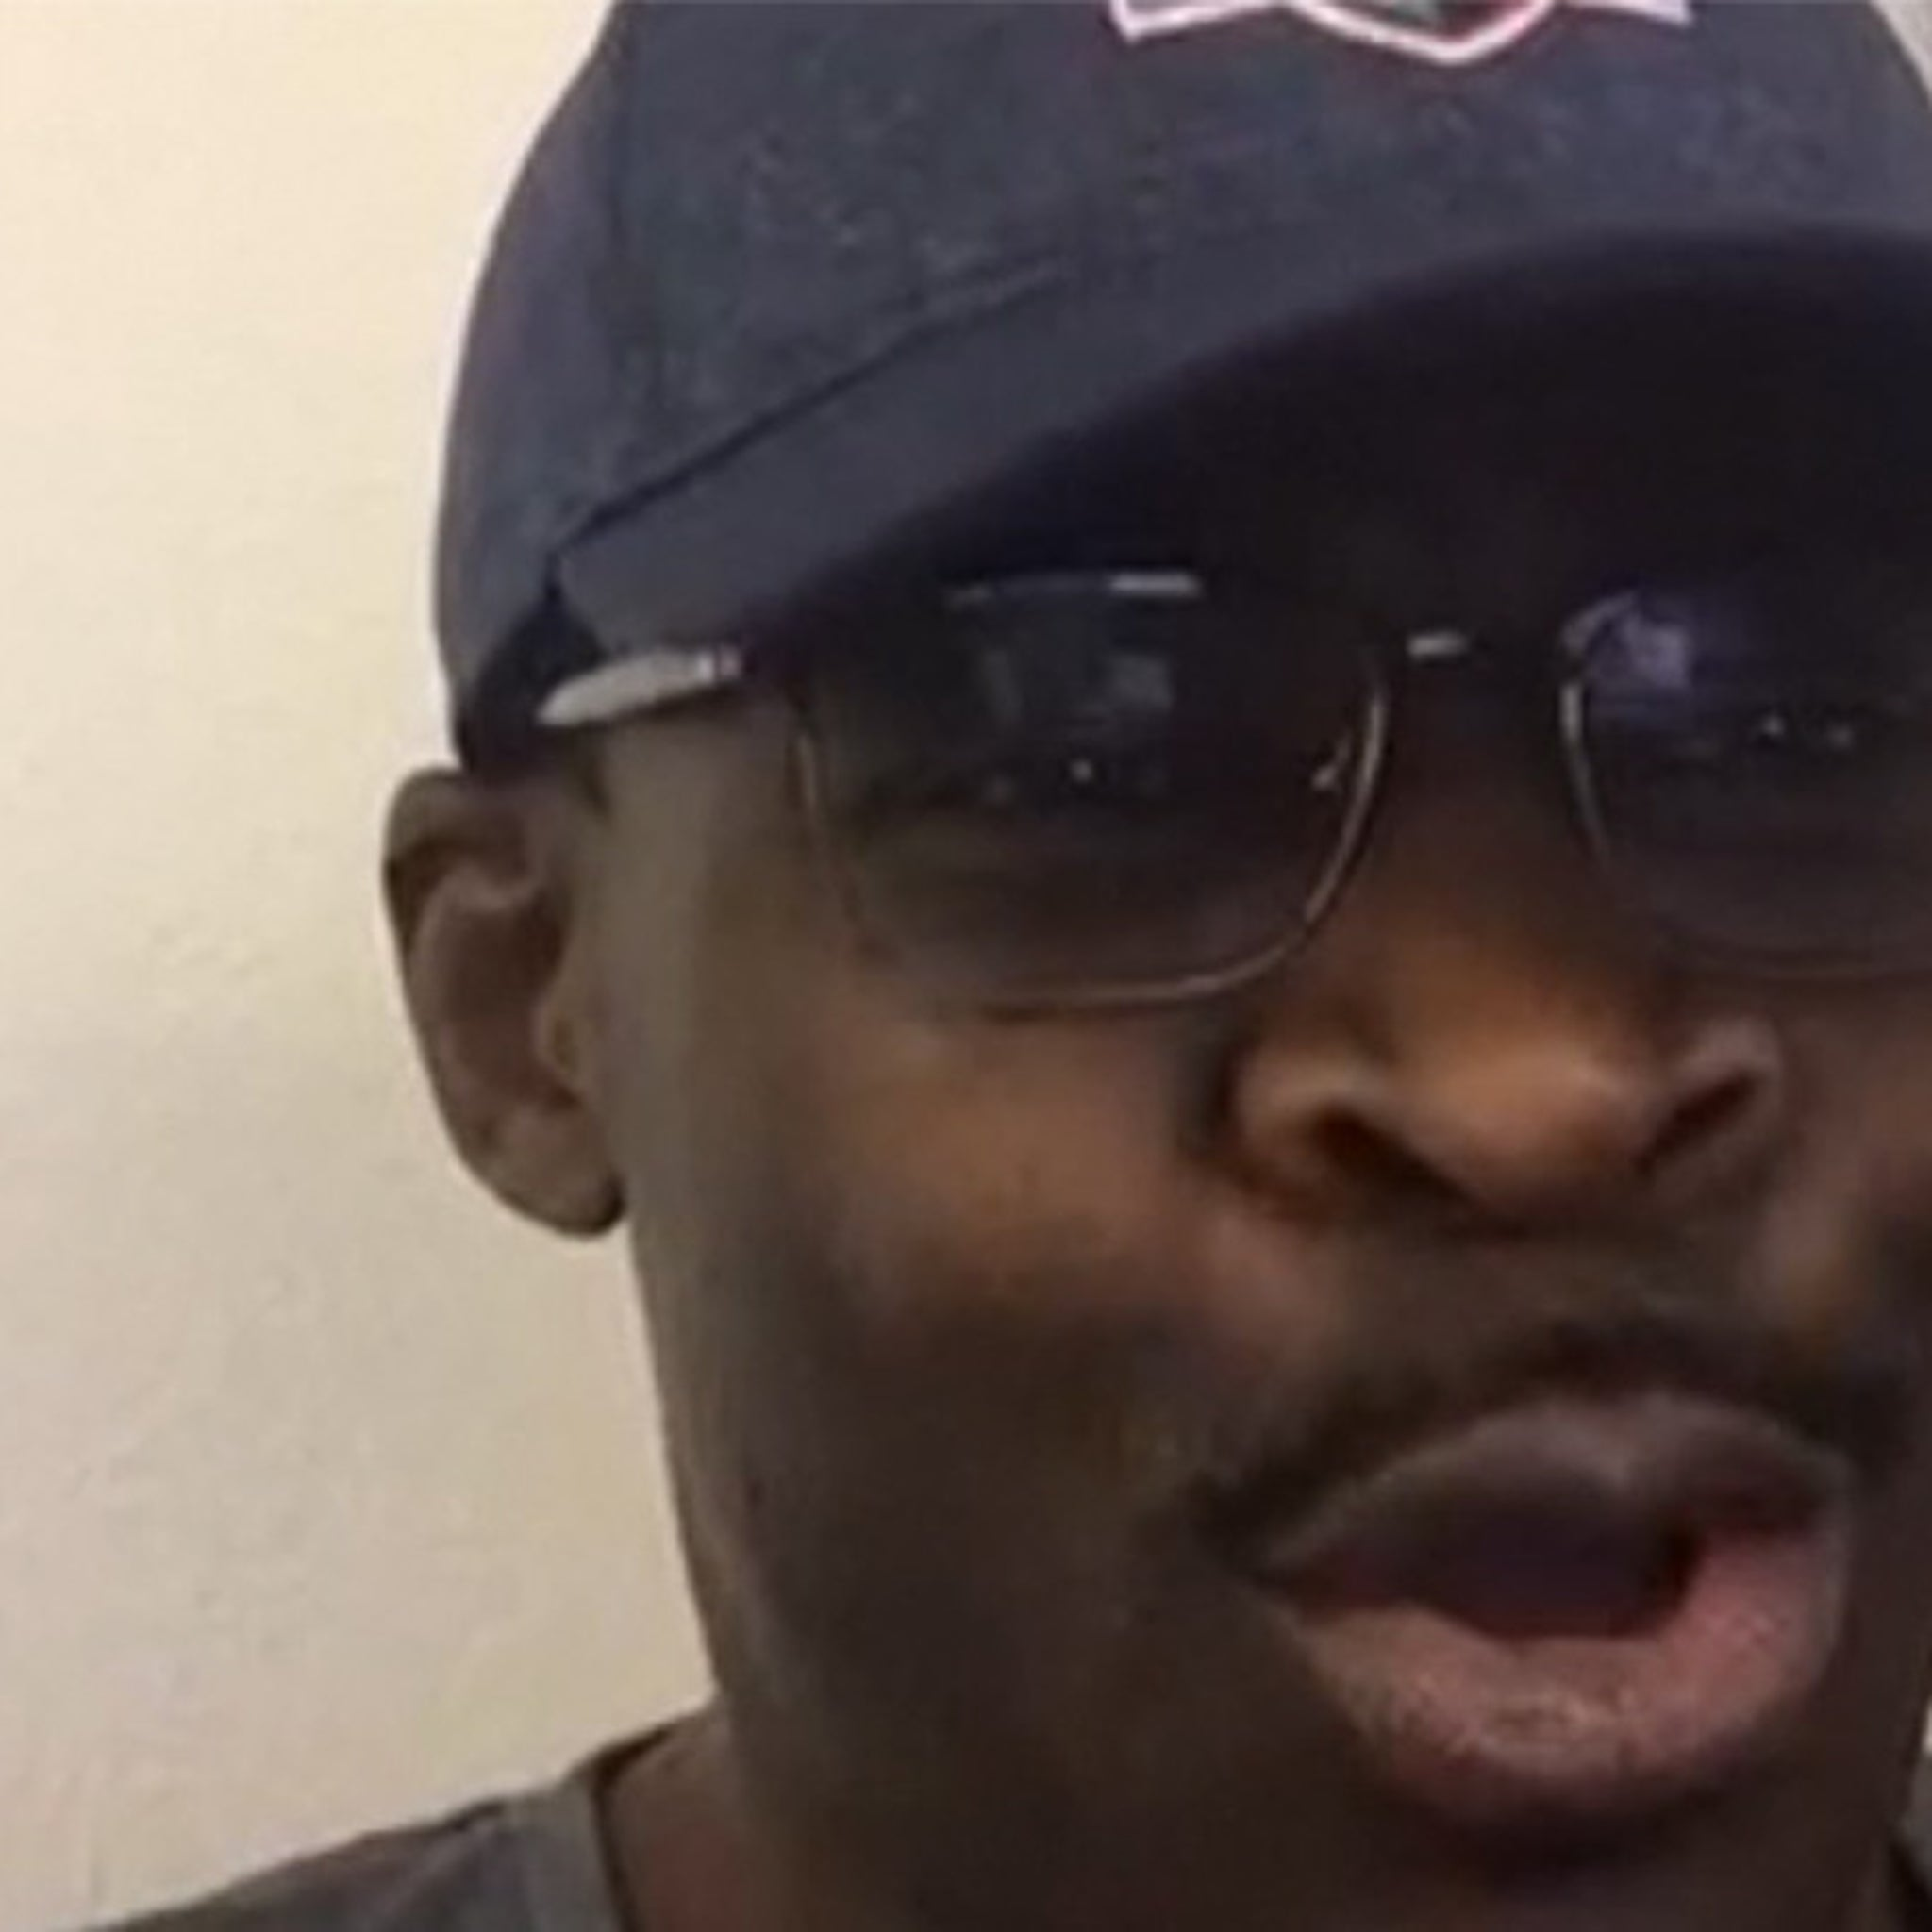 Michael Irvin Says He S Not Going To Fight Steve Smith But